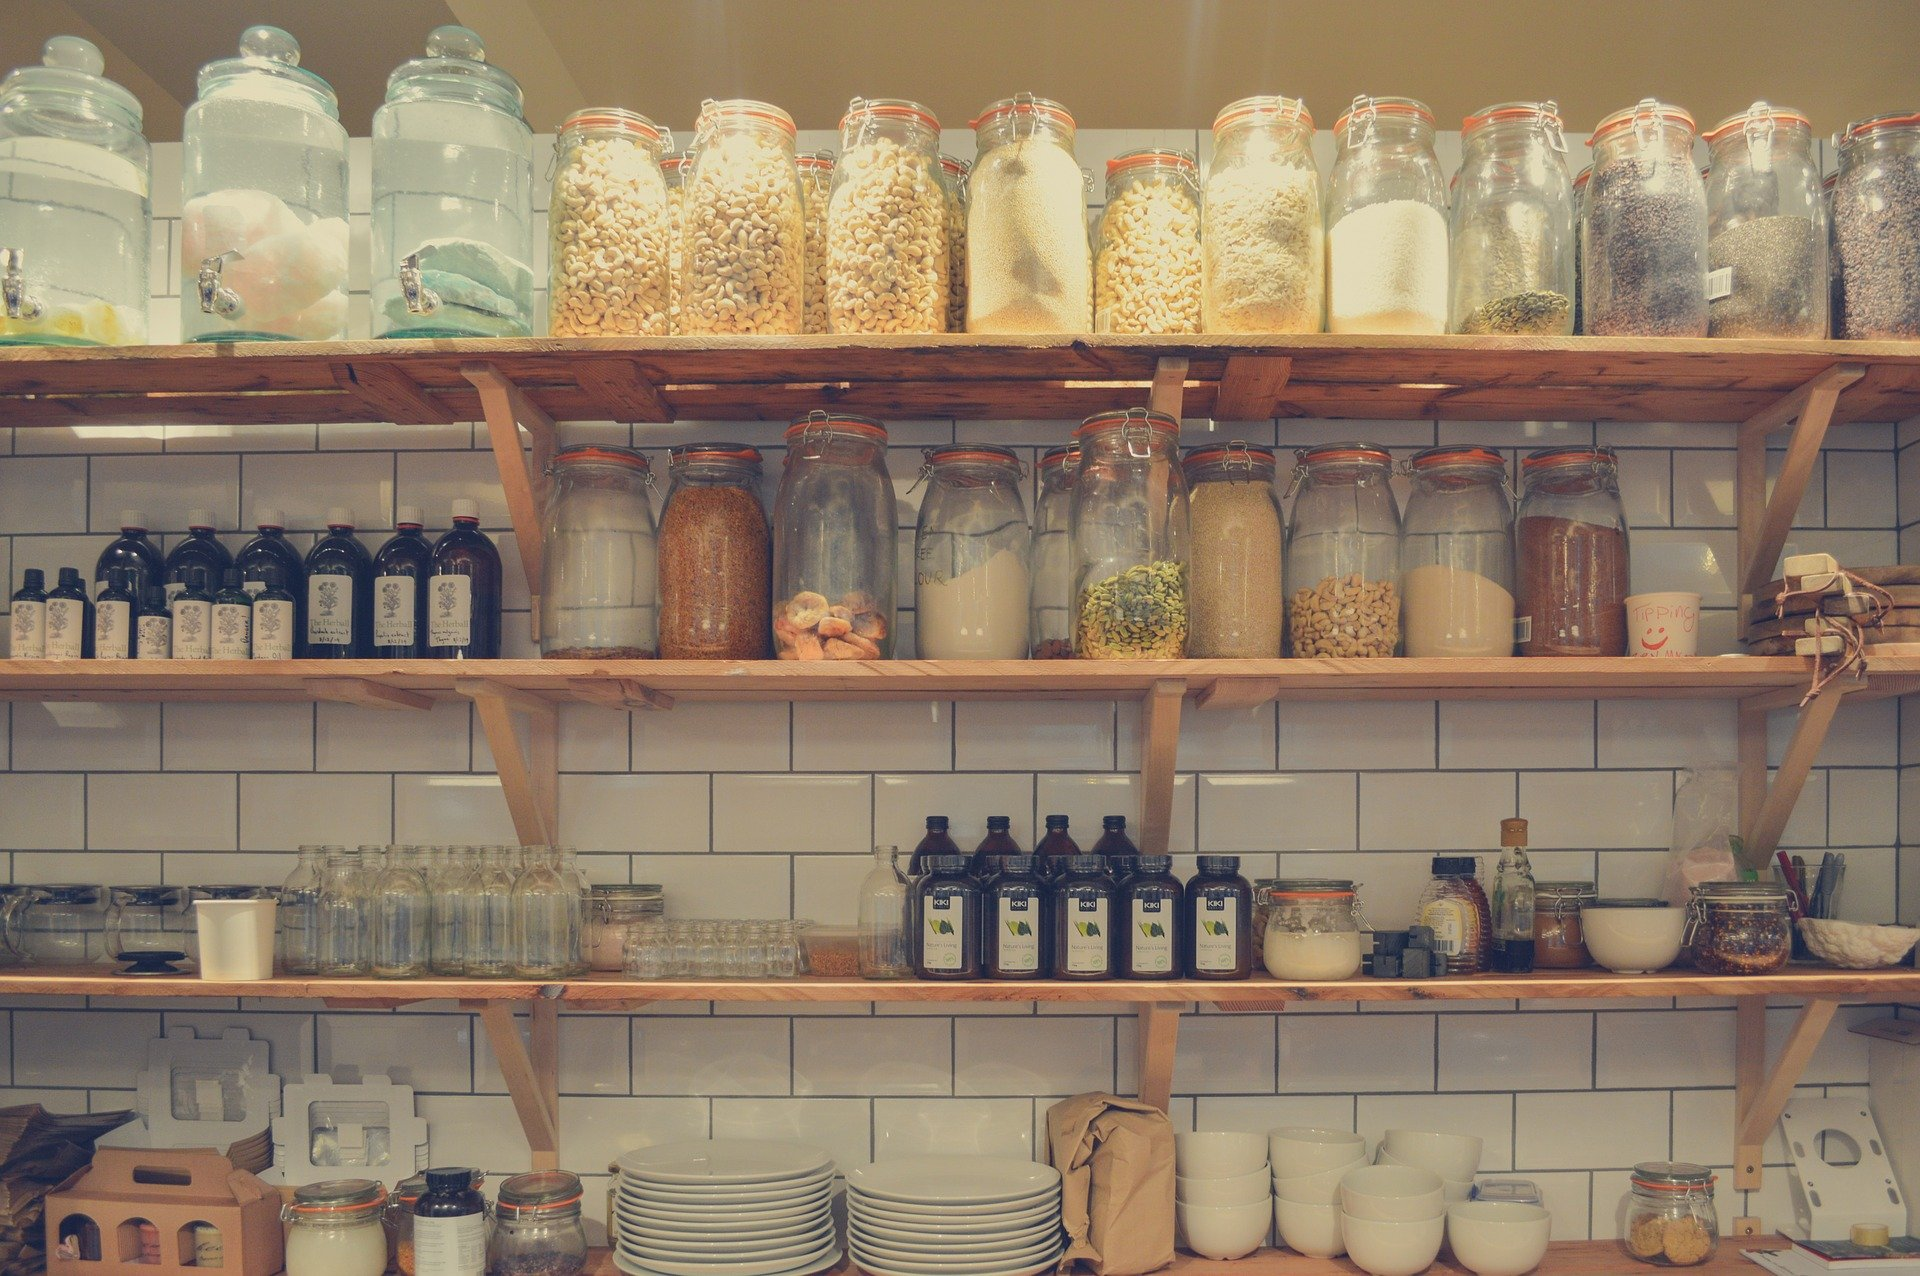 Pantry shelf with jars containing foods